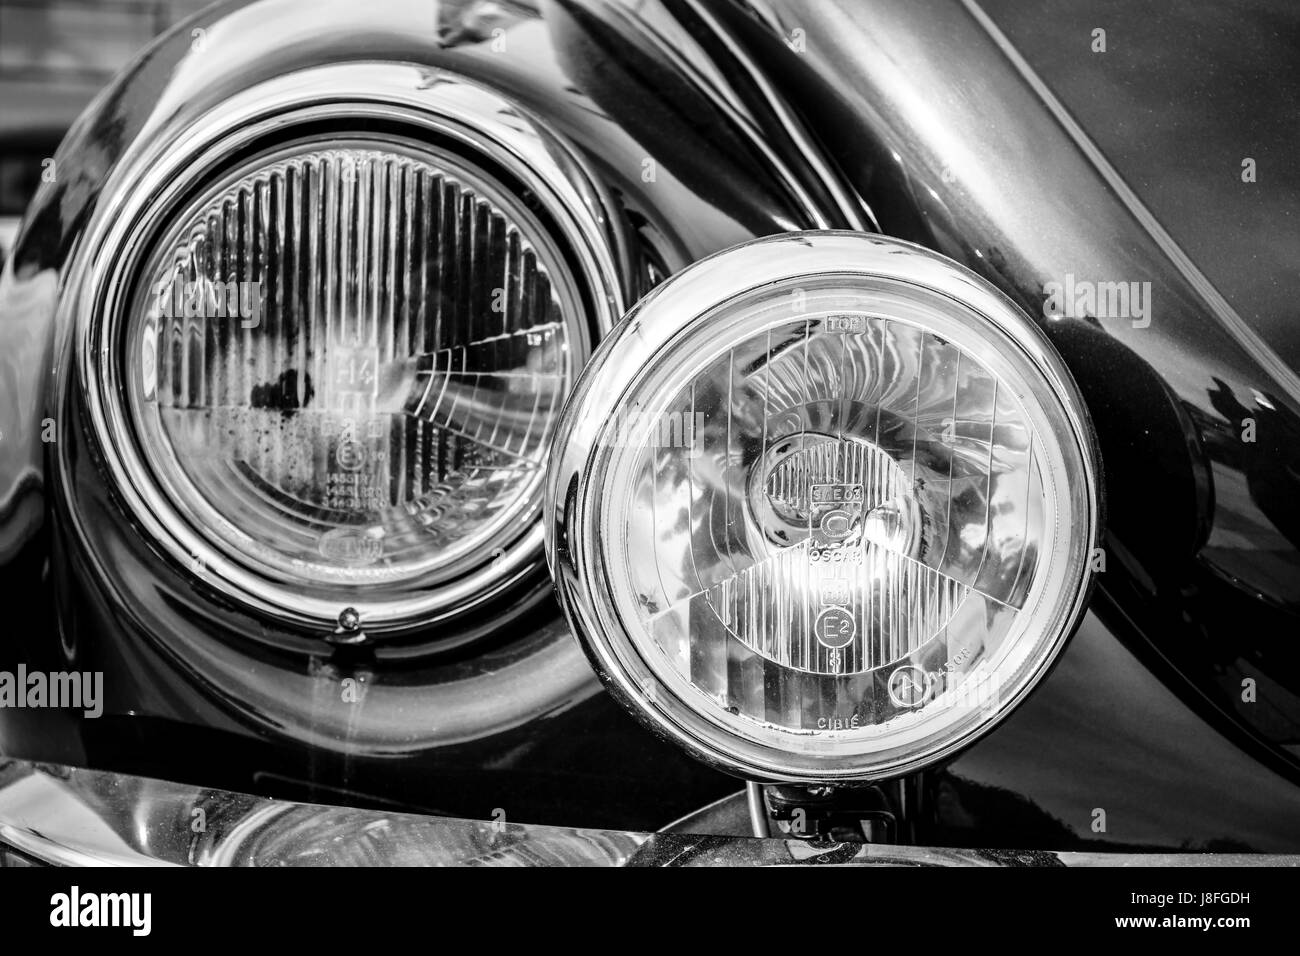 STUTTGART, GERMANY - MARCH 04, 2017: Headlamp of a compact car Volkswagen Beetle Cabrio, 1976. Close-up. Black and - Stock Image